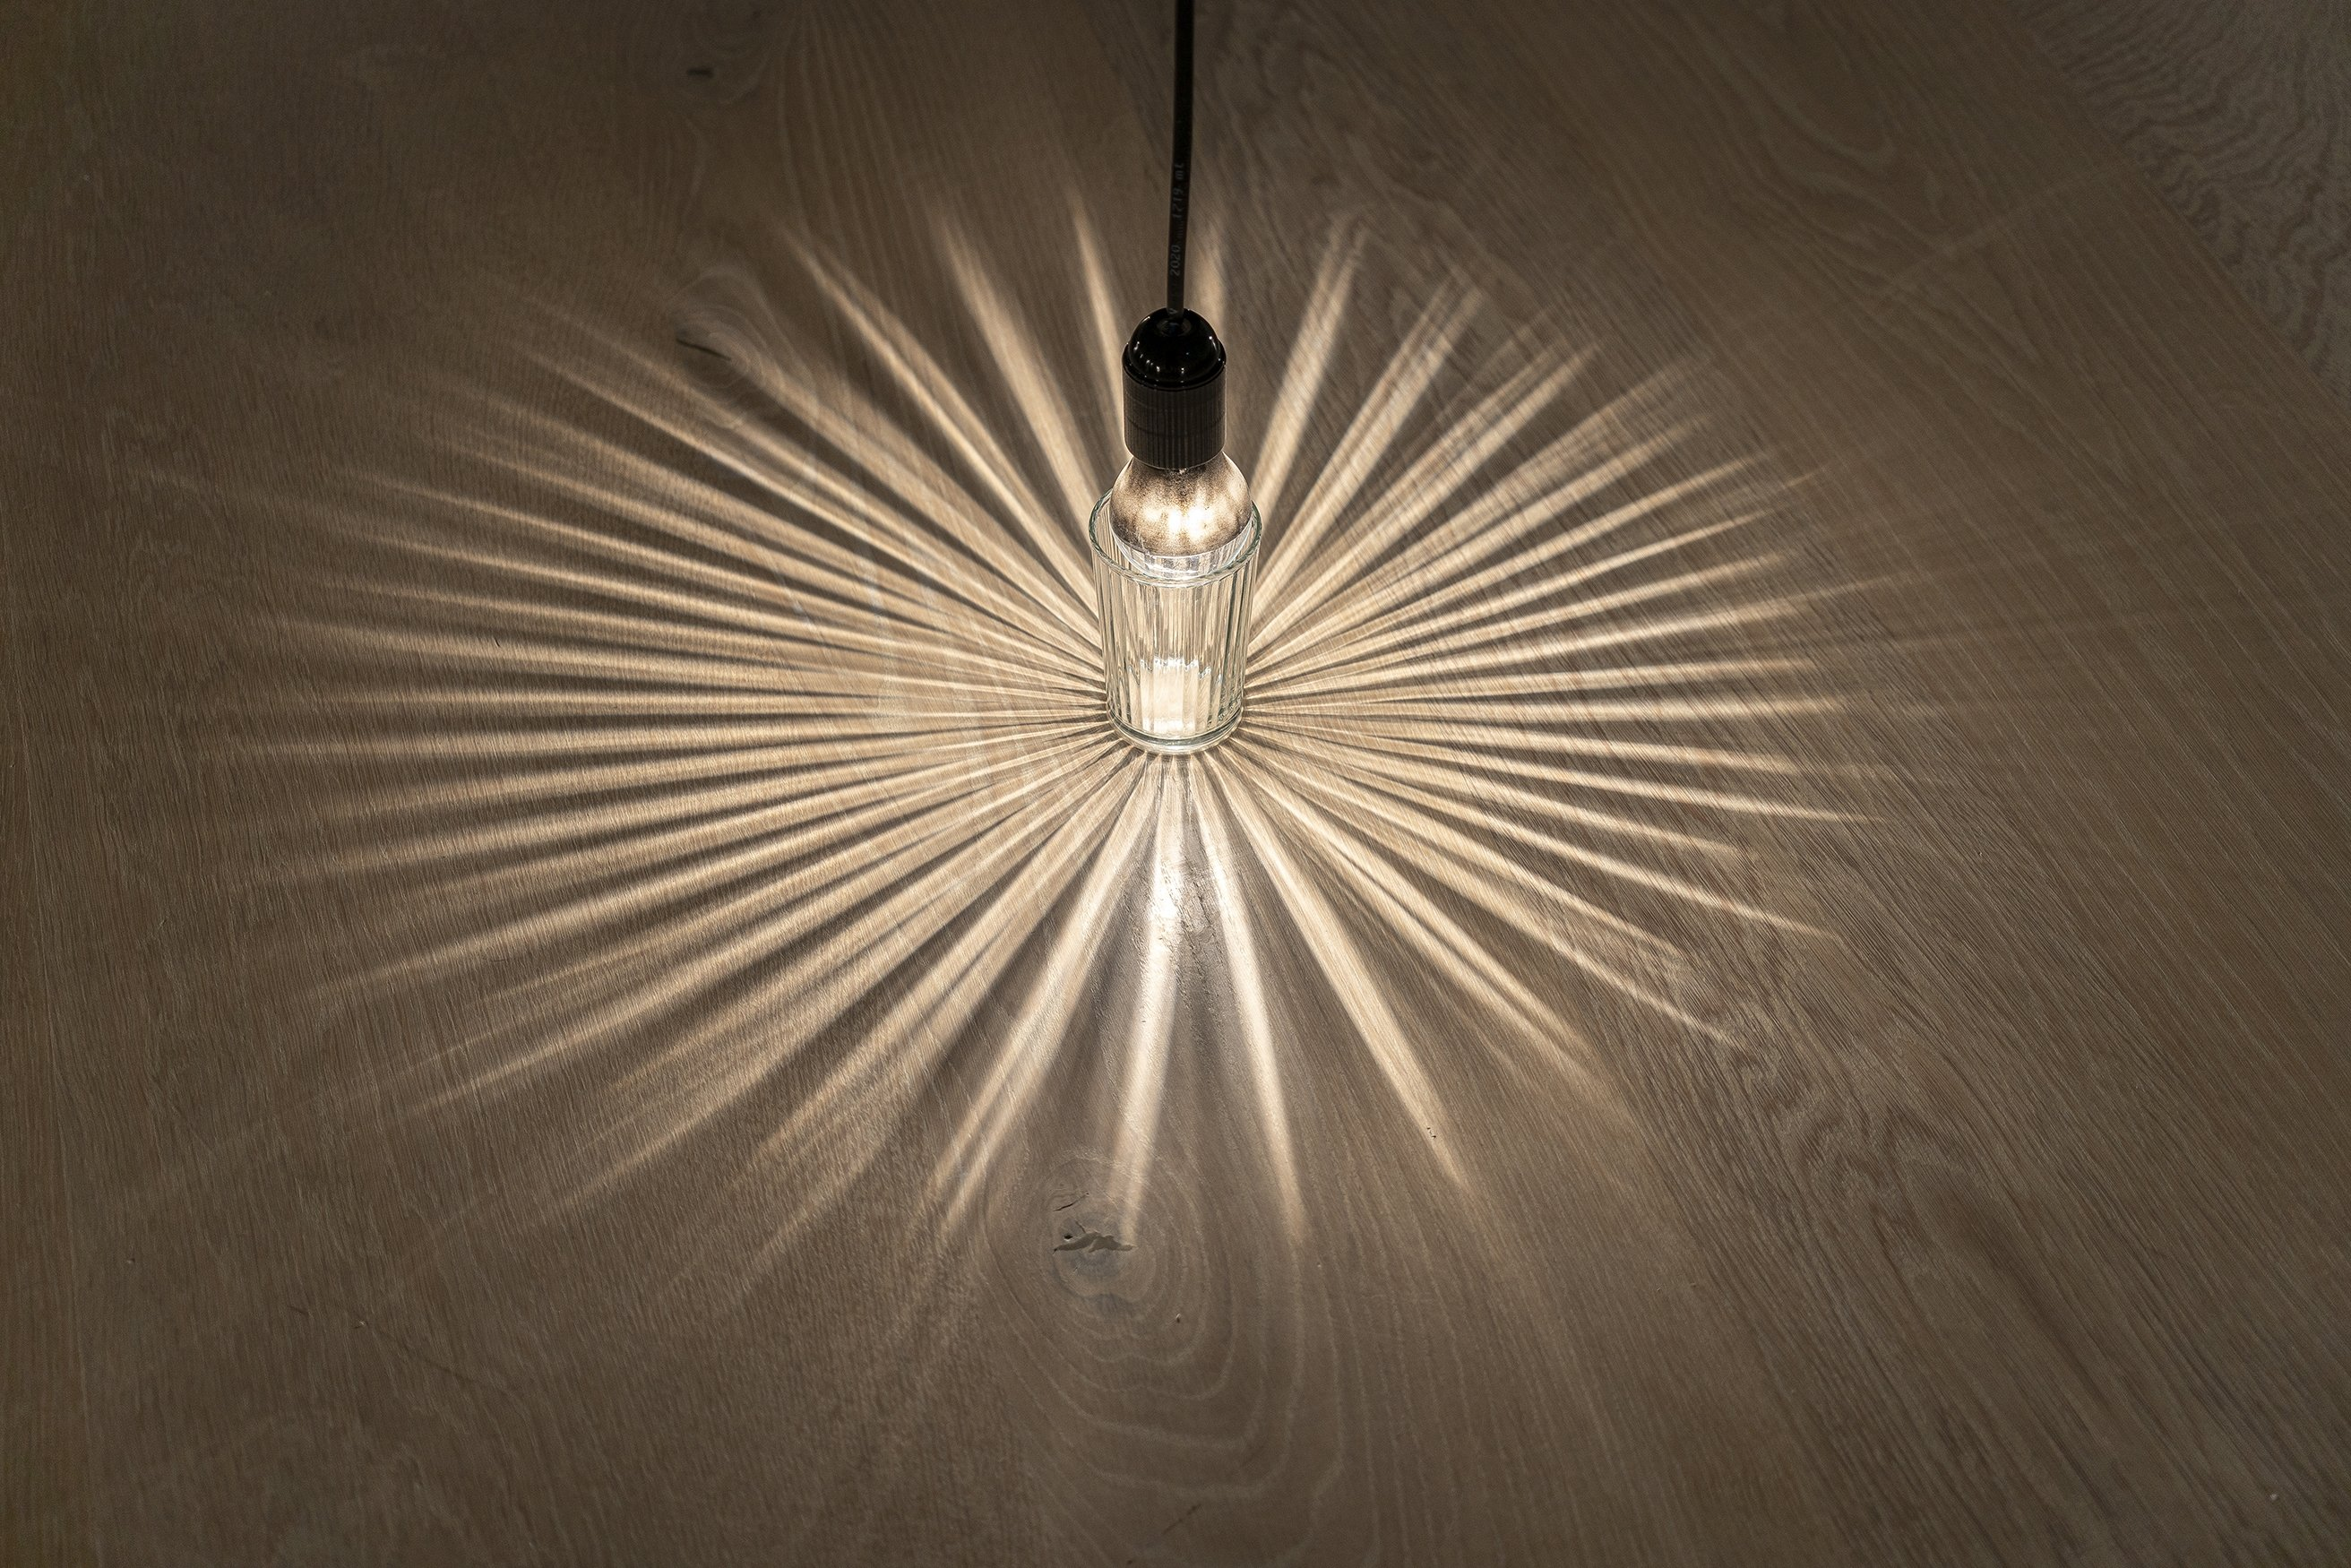 Annette Ruenzler, untitled, 2013, sanded light bulbs, glasses, pitcher, cables, luster terminals. (Courtesy of Arter)